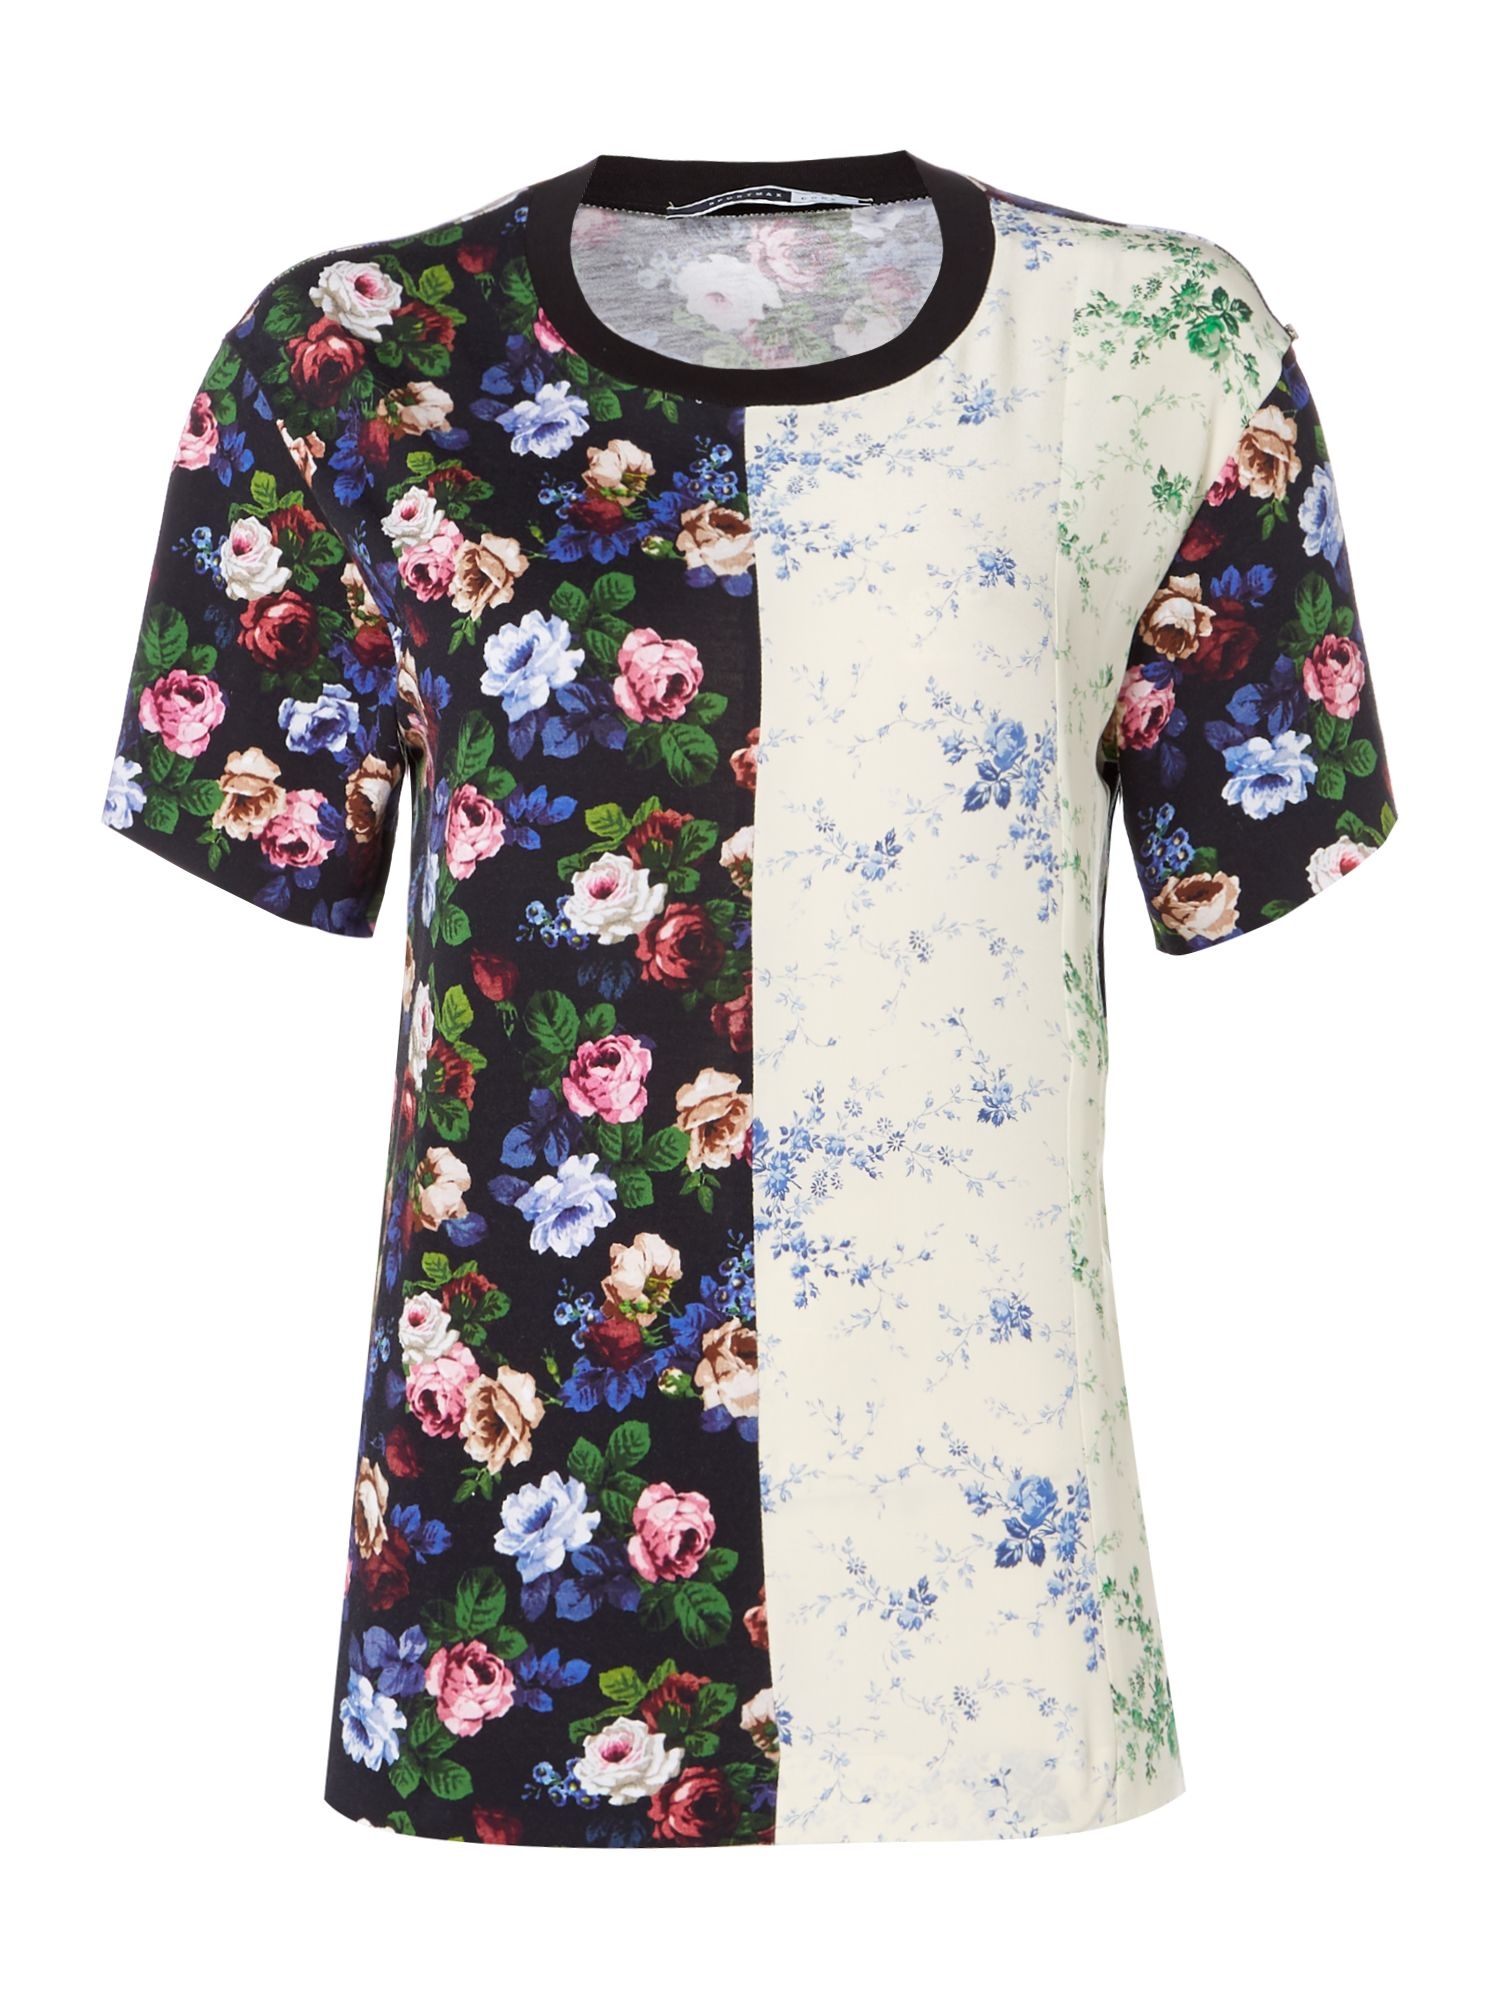 Sportmax Code jersey tee in floral print and contrast colour, Black